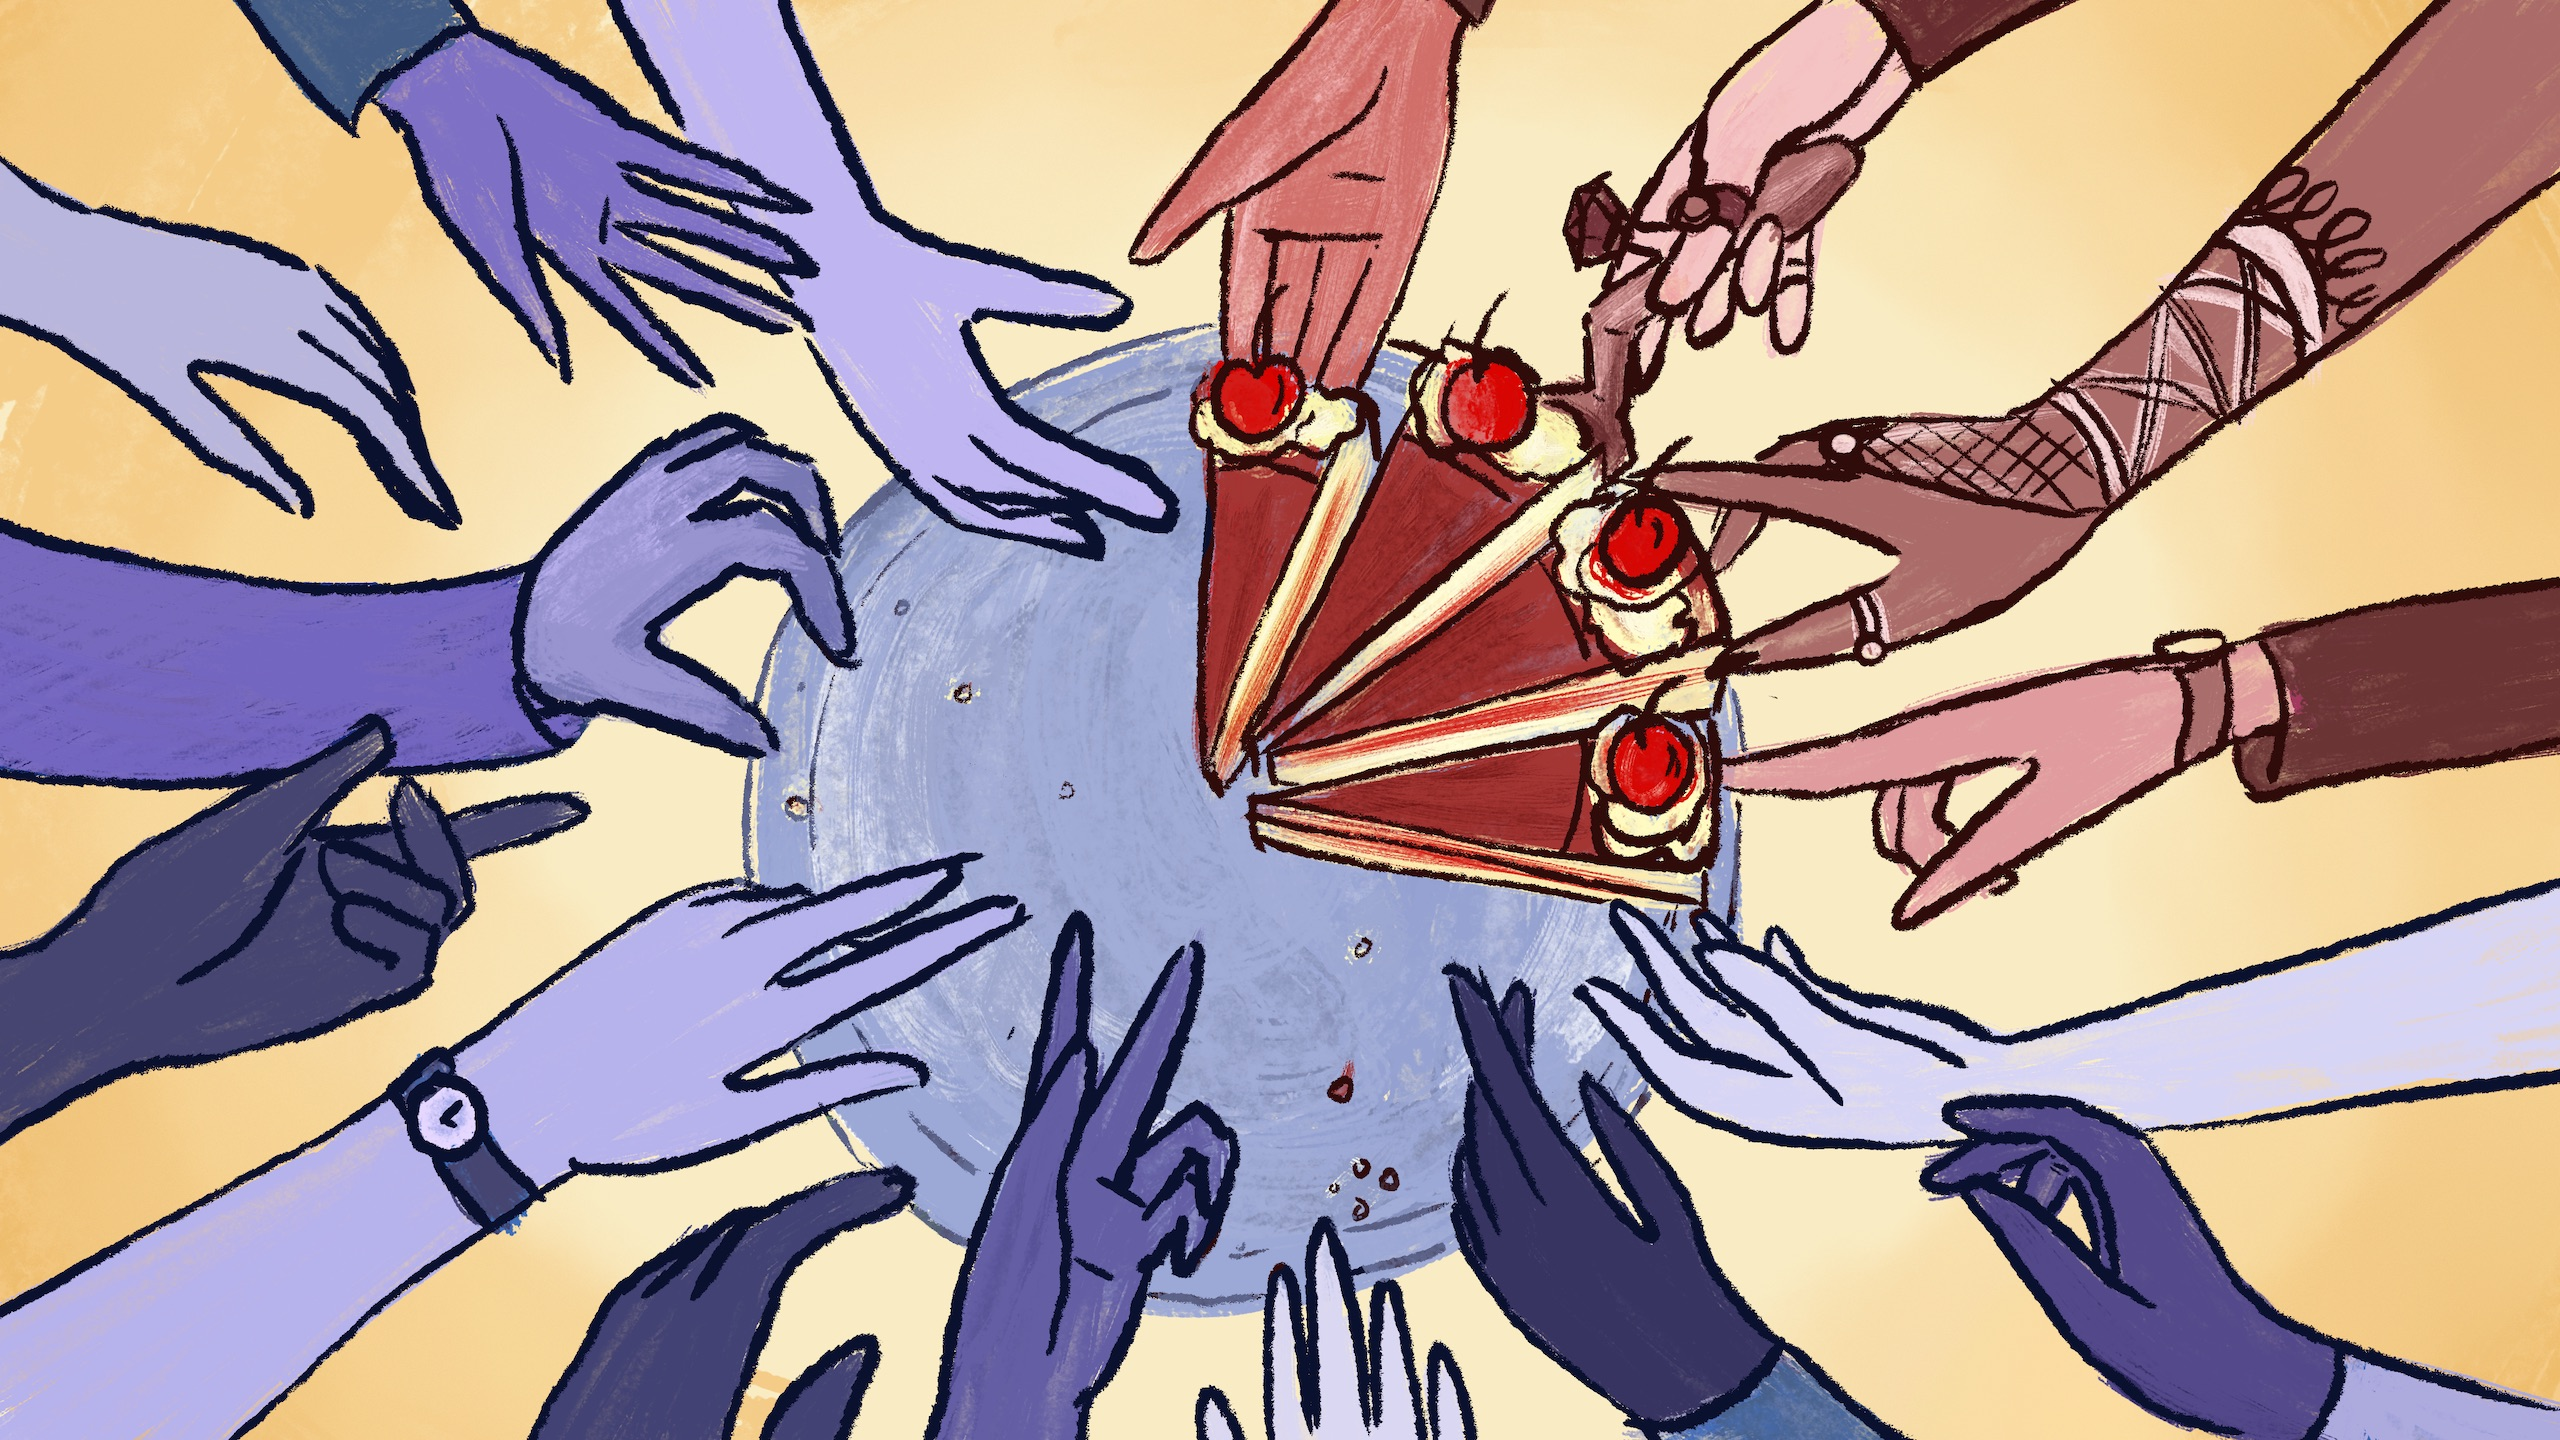 Hands reaching towards a plate, only a few can reach pieces of cake on the plate.